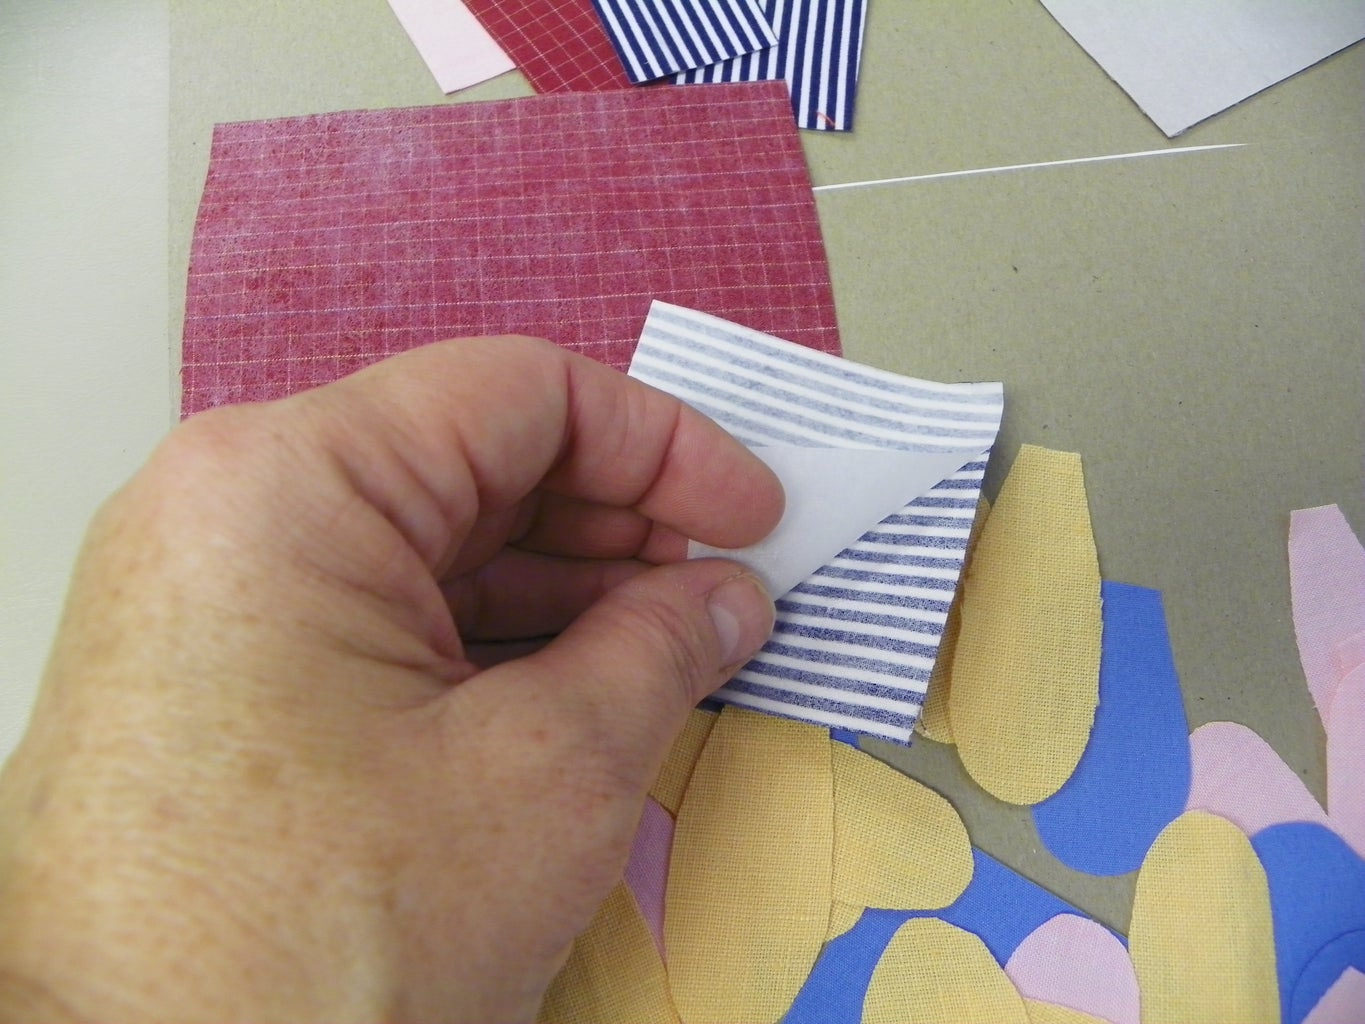 Peeling the Paper Off the Back of the Shapes